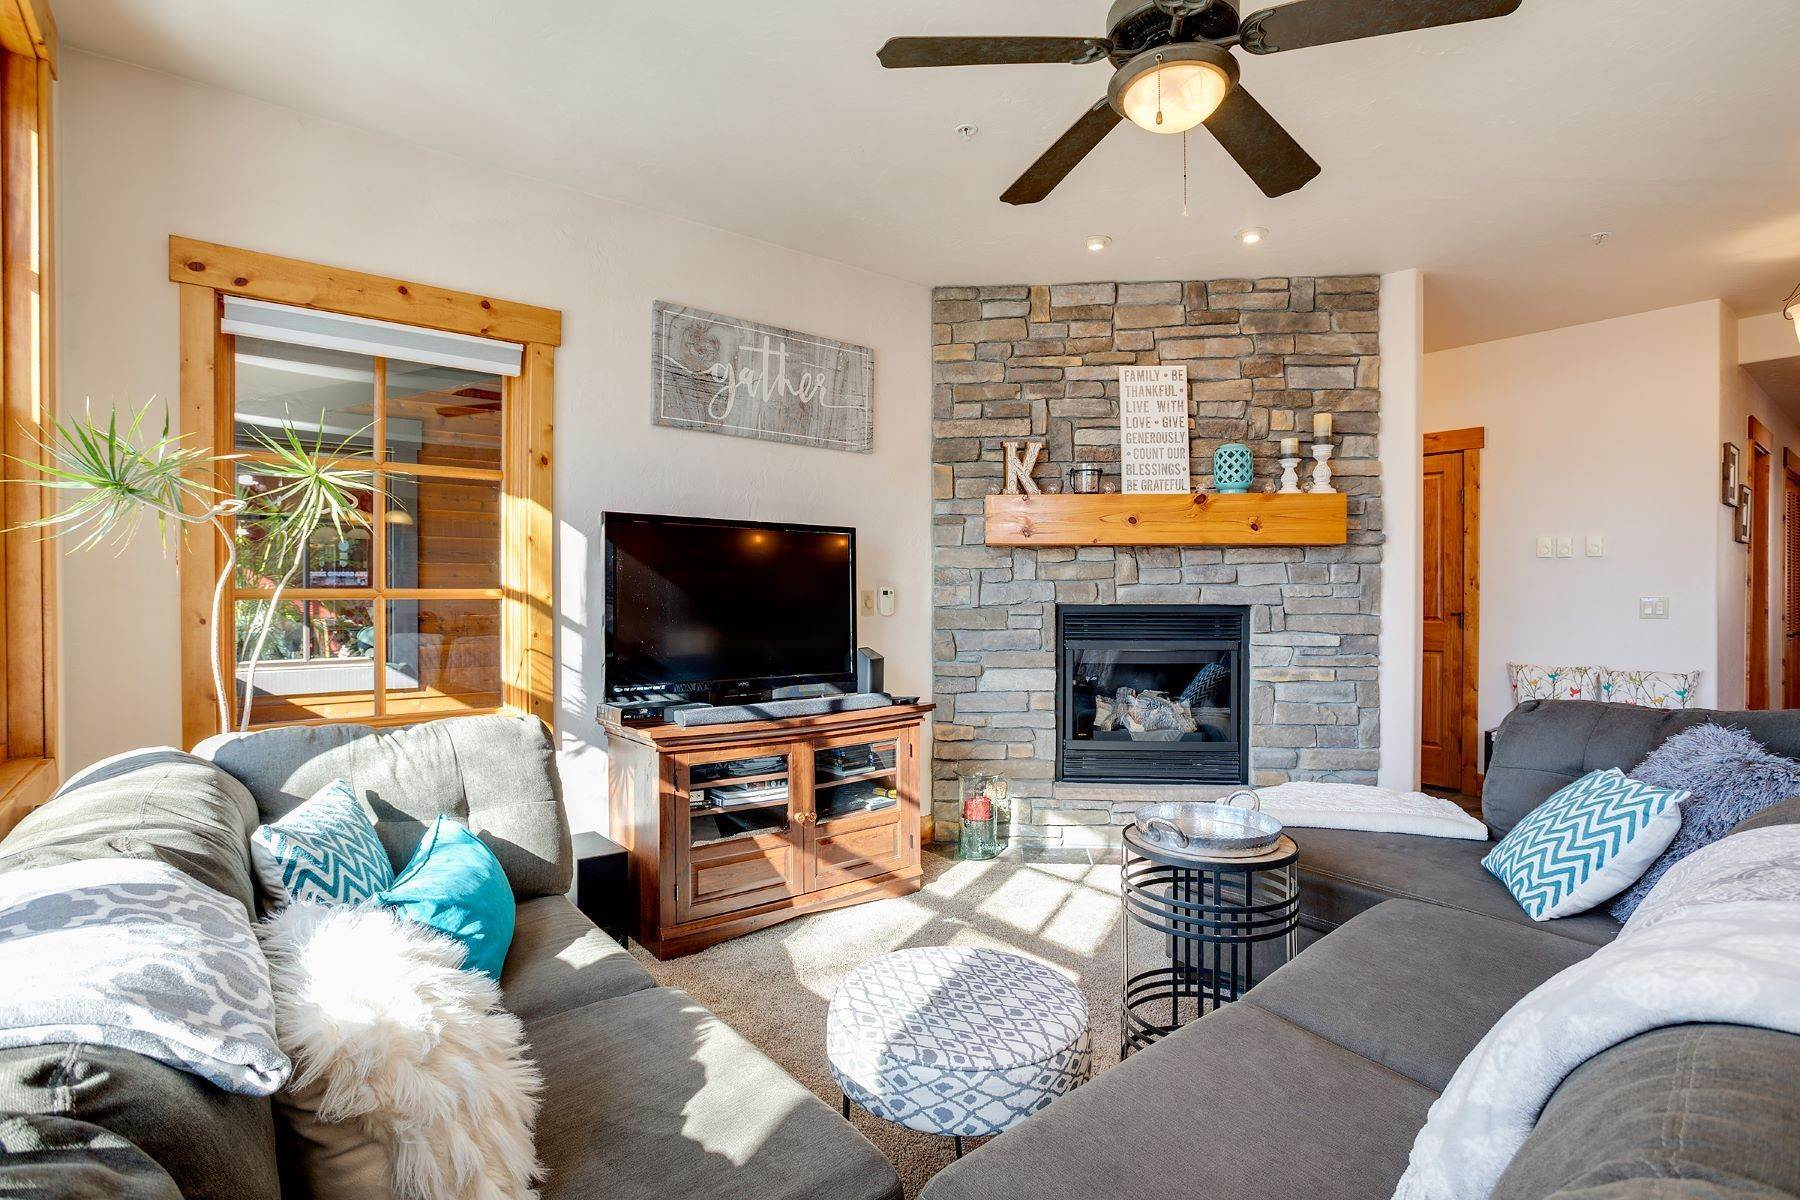 Condominiums à Sunny, Centrally Located Condo 580 Anglers Drive Unit #204 Steamboat Springs, Colorado 80487 États-Unis